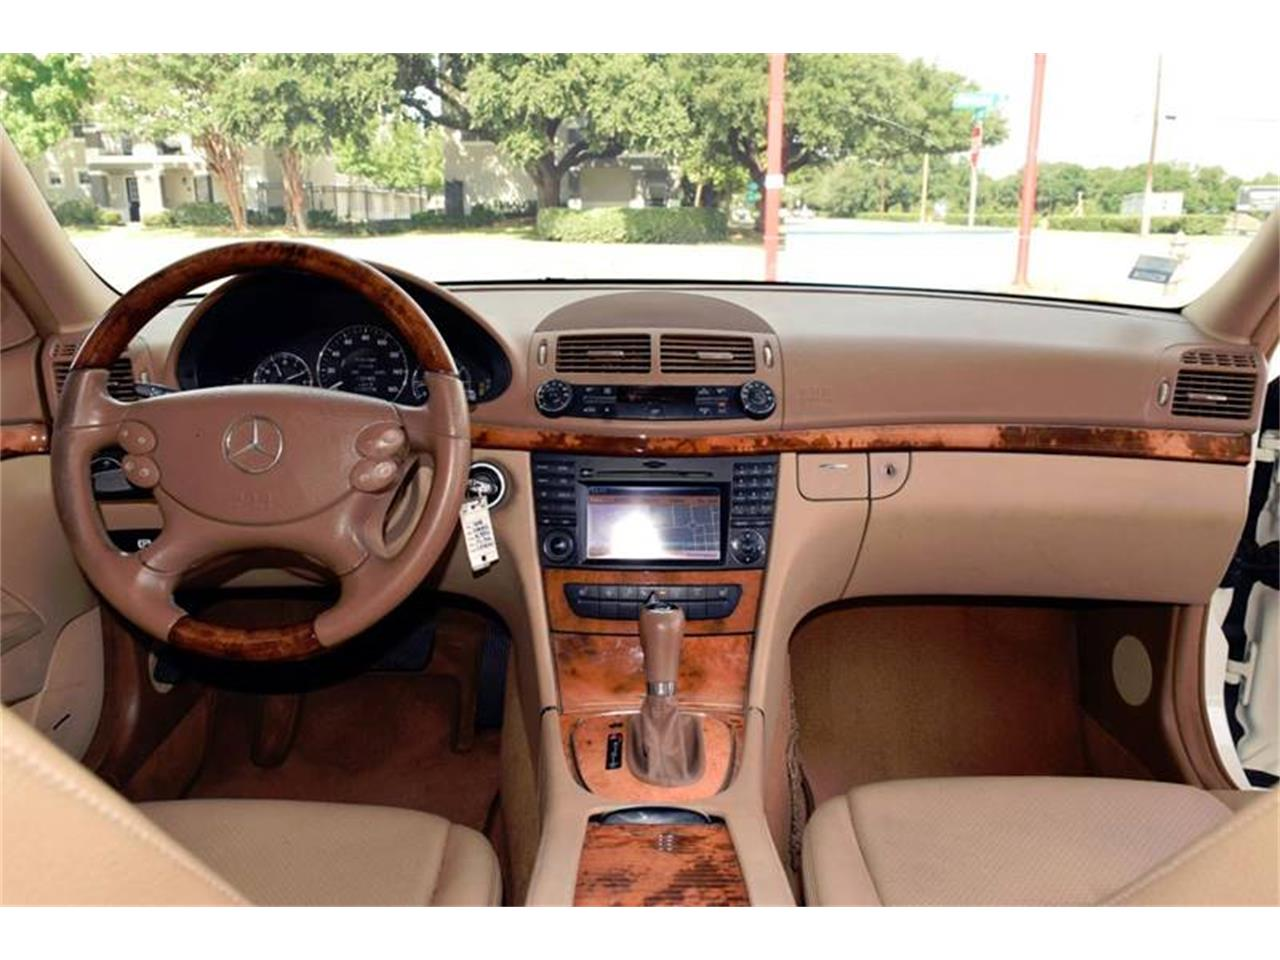 2009 Mercedes-Benz E-Class for sale in Fort Worth, TX – photo 15